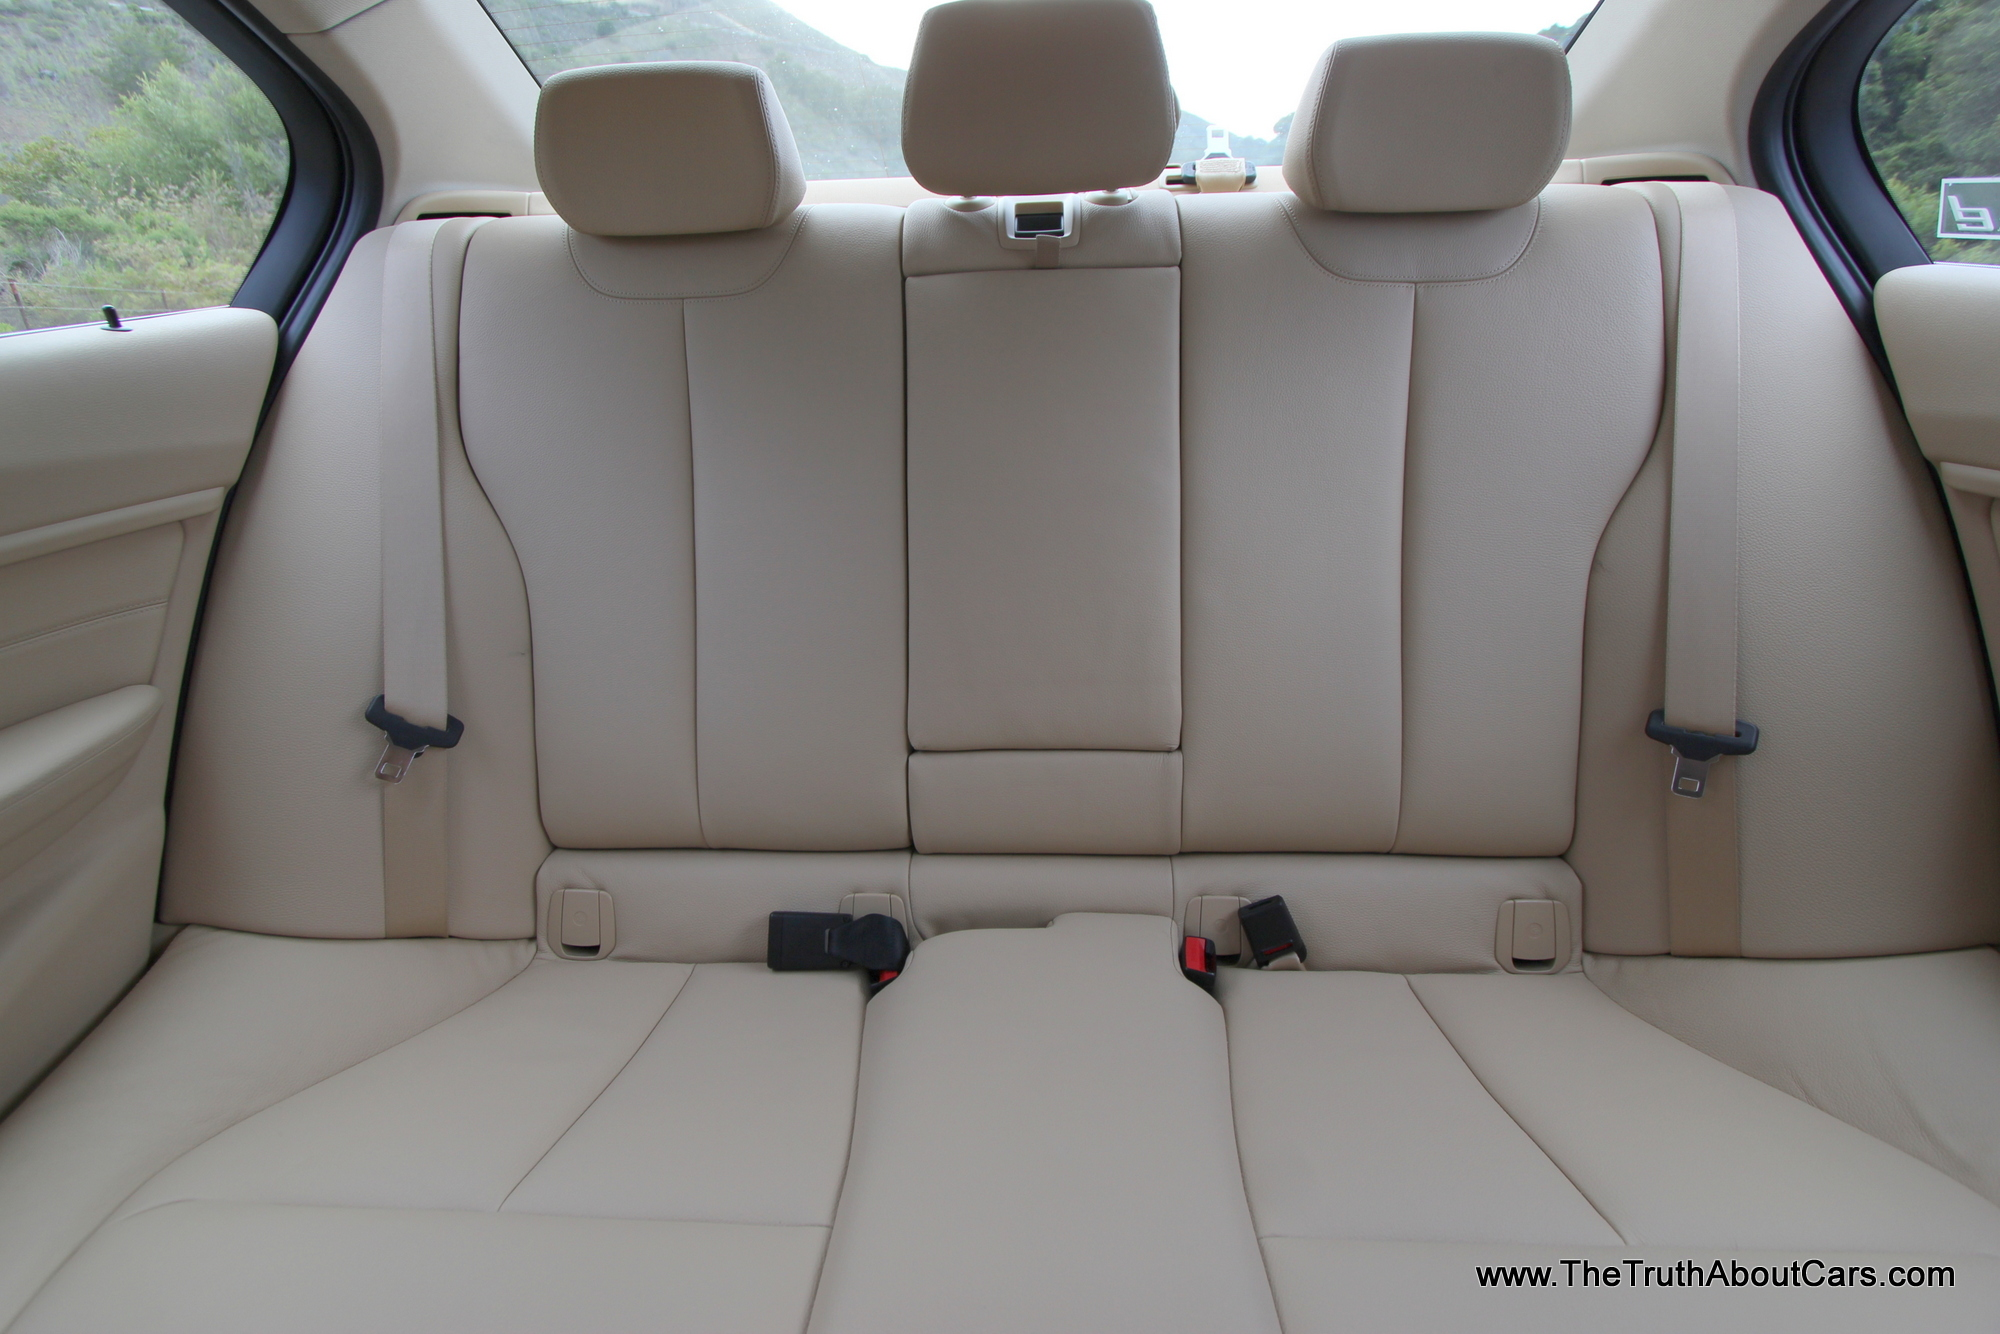 displaying 18 gt images for bmw 328i interior back seat